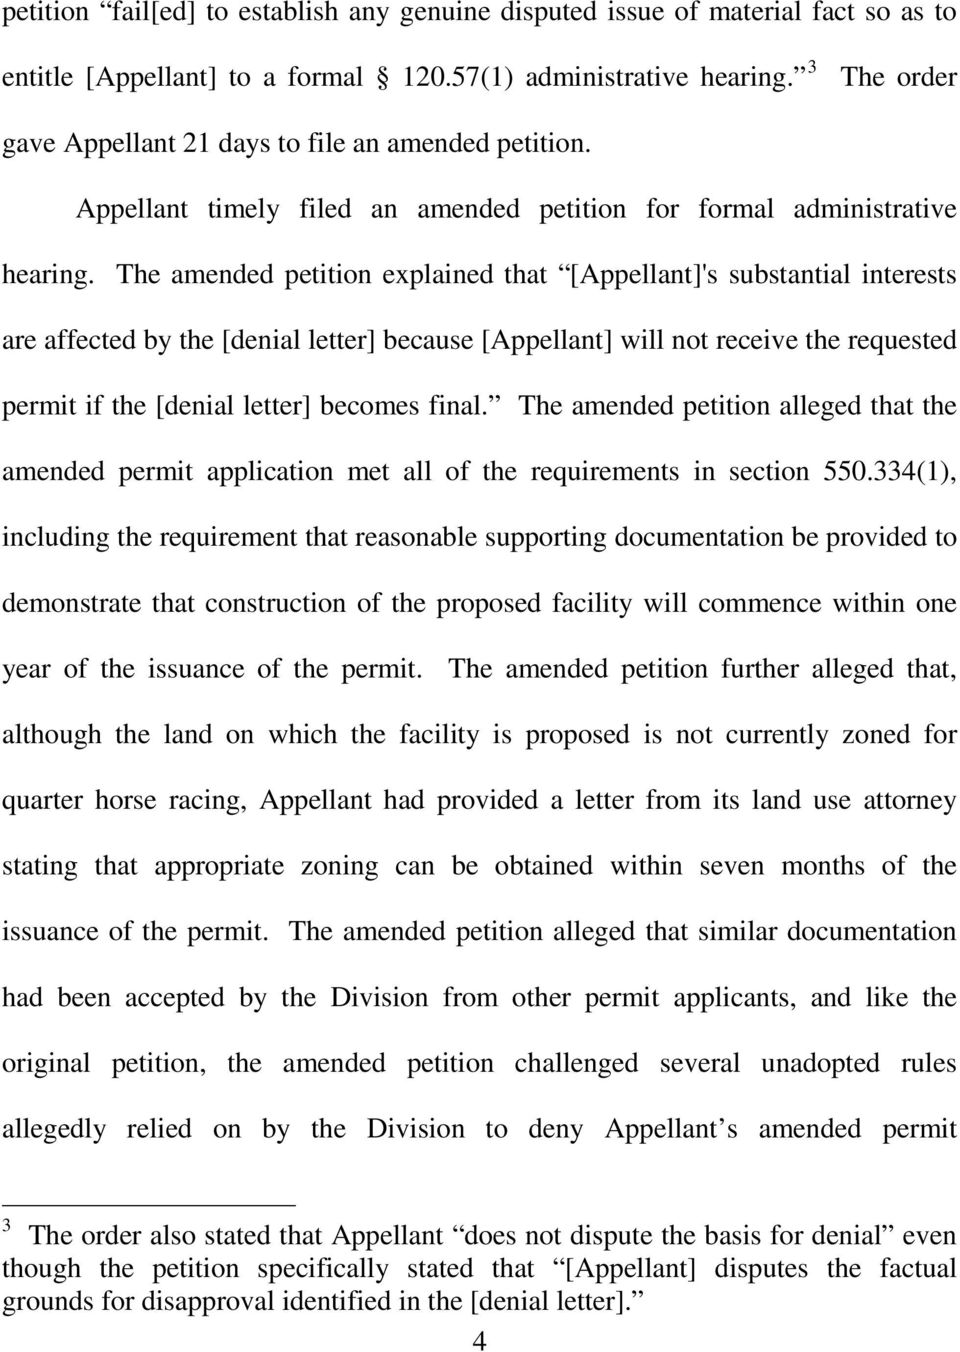 The amended petition explained that [Appellant]'s substantial interests are affected by the [denial letter] because [Appellant] will not receive the requested permit if the [denial letter] becomes